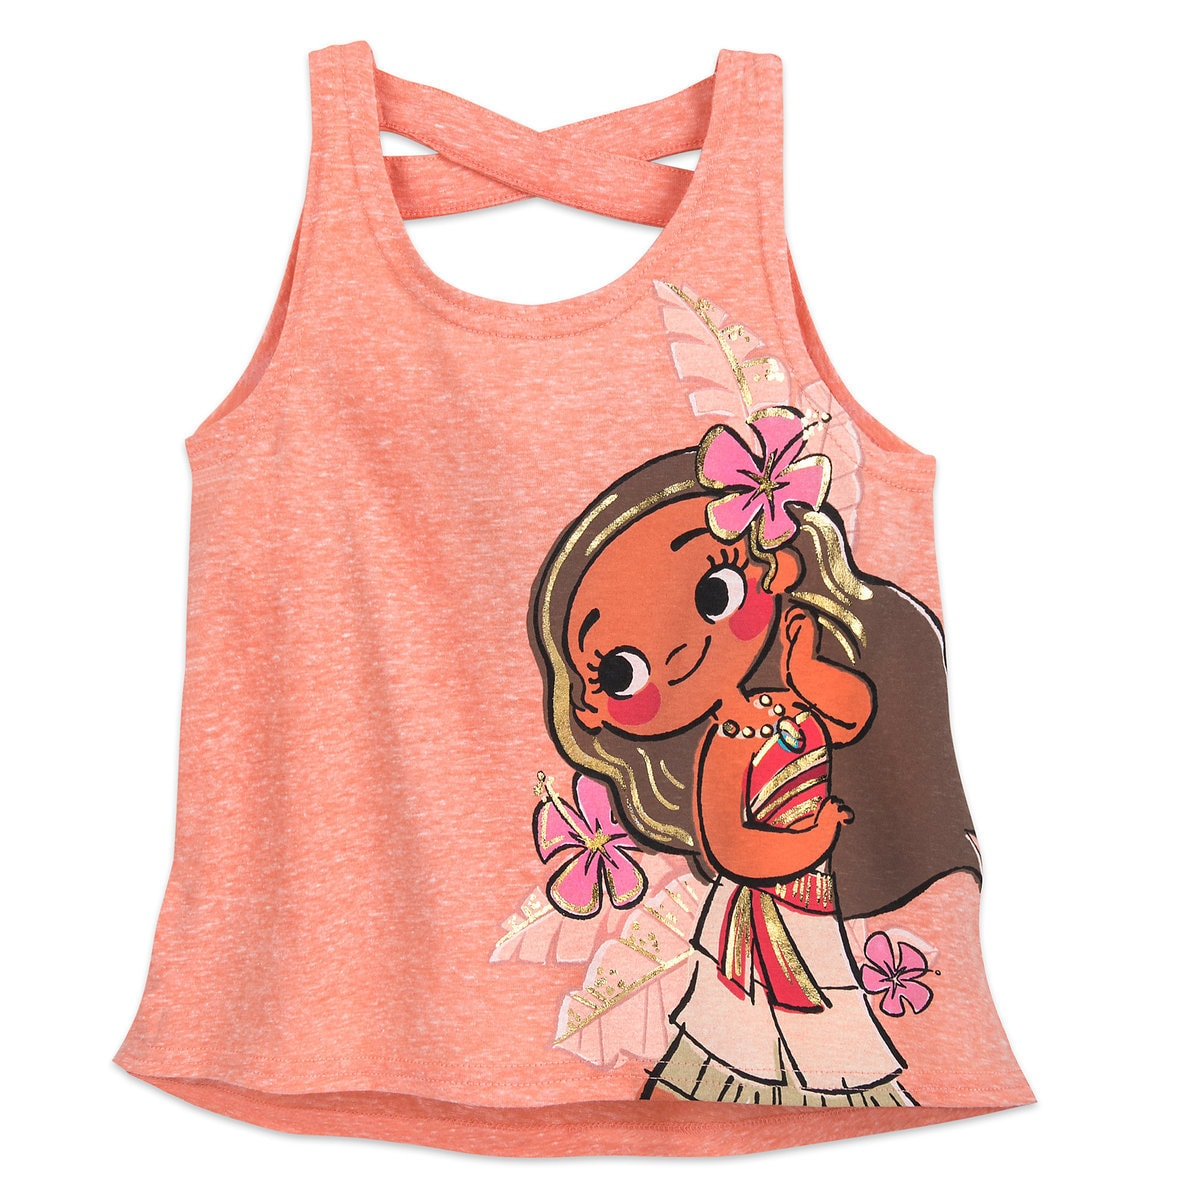 Product Image of Moana Fashion Swing Tank Top for Girls # 1